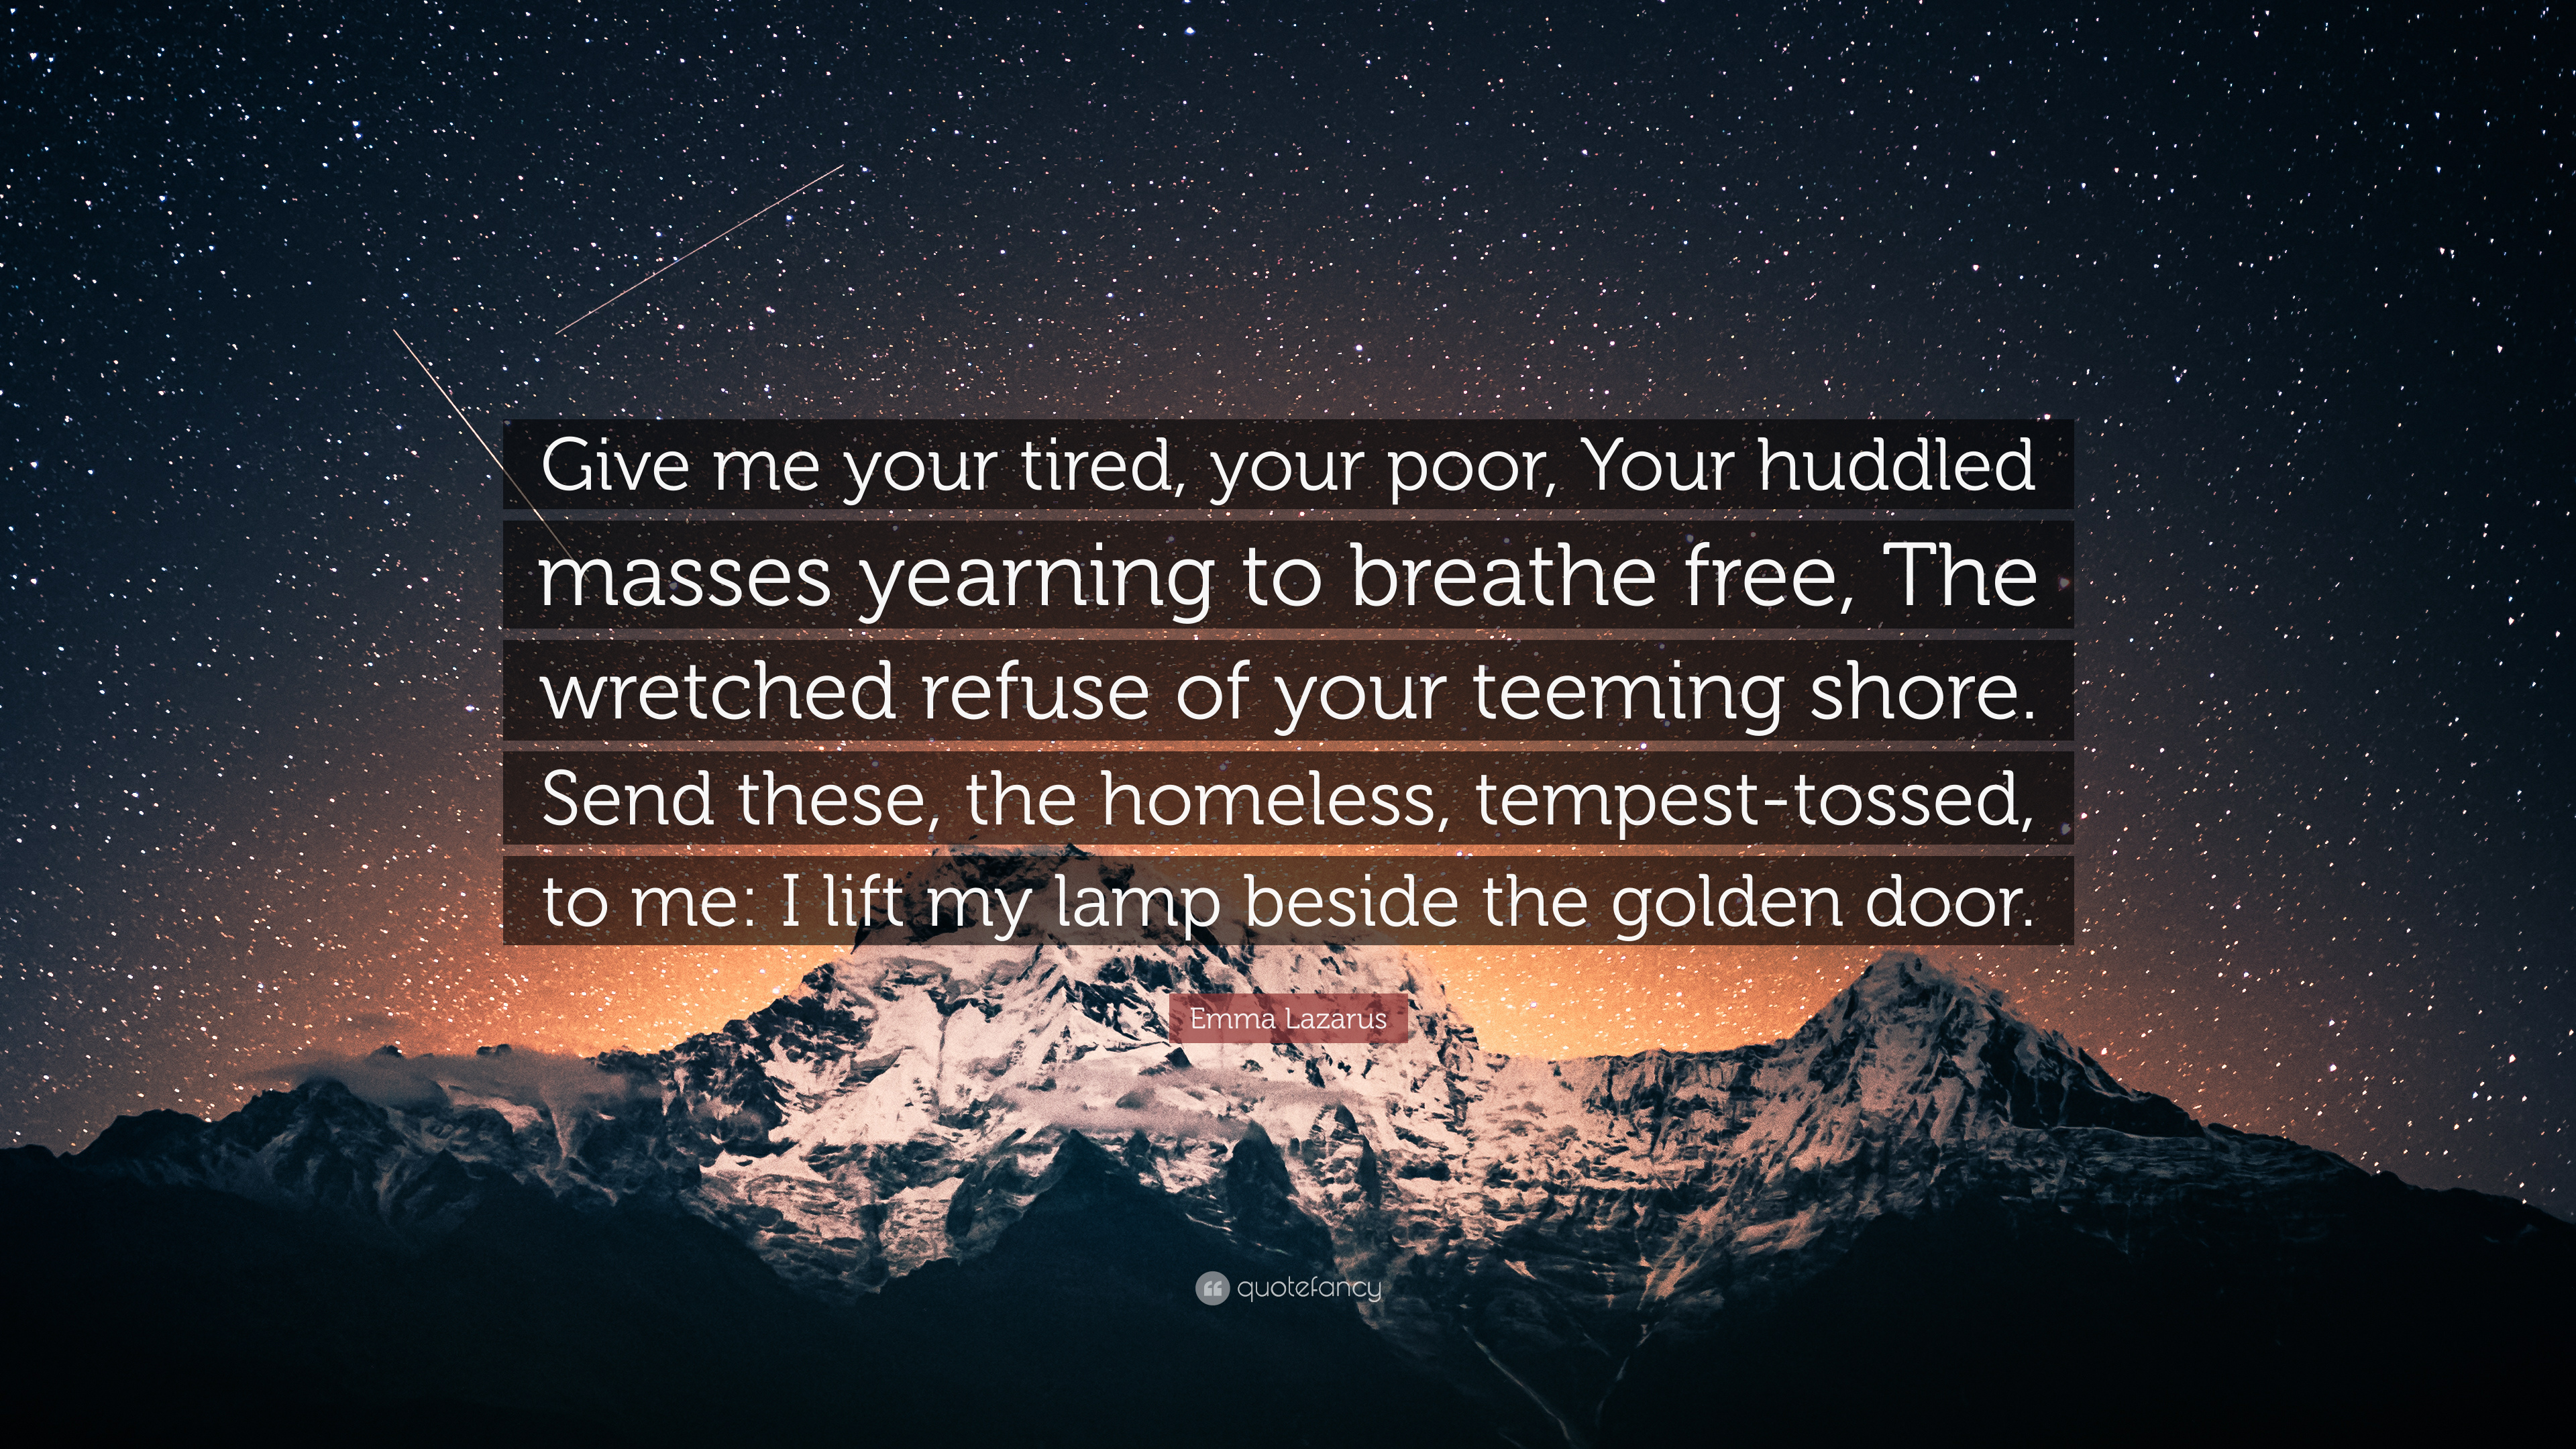 Elegant Emma Lazarus Quote: U201cGive Me Your Tired, Your Poor, Your Huddled Masses